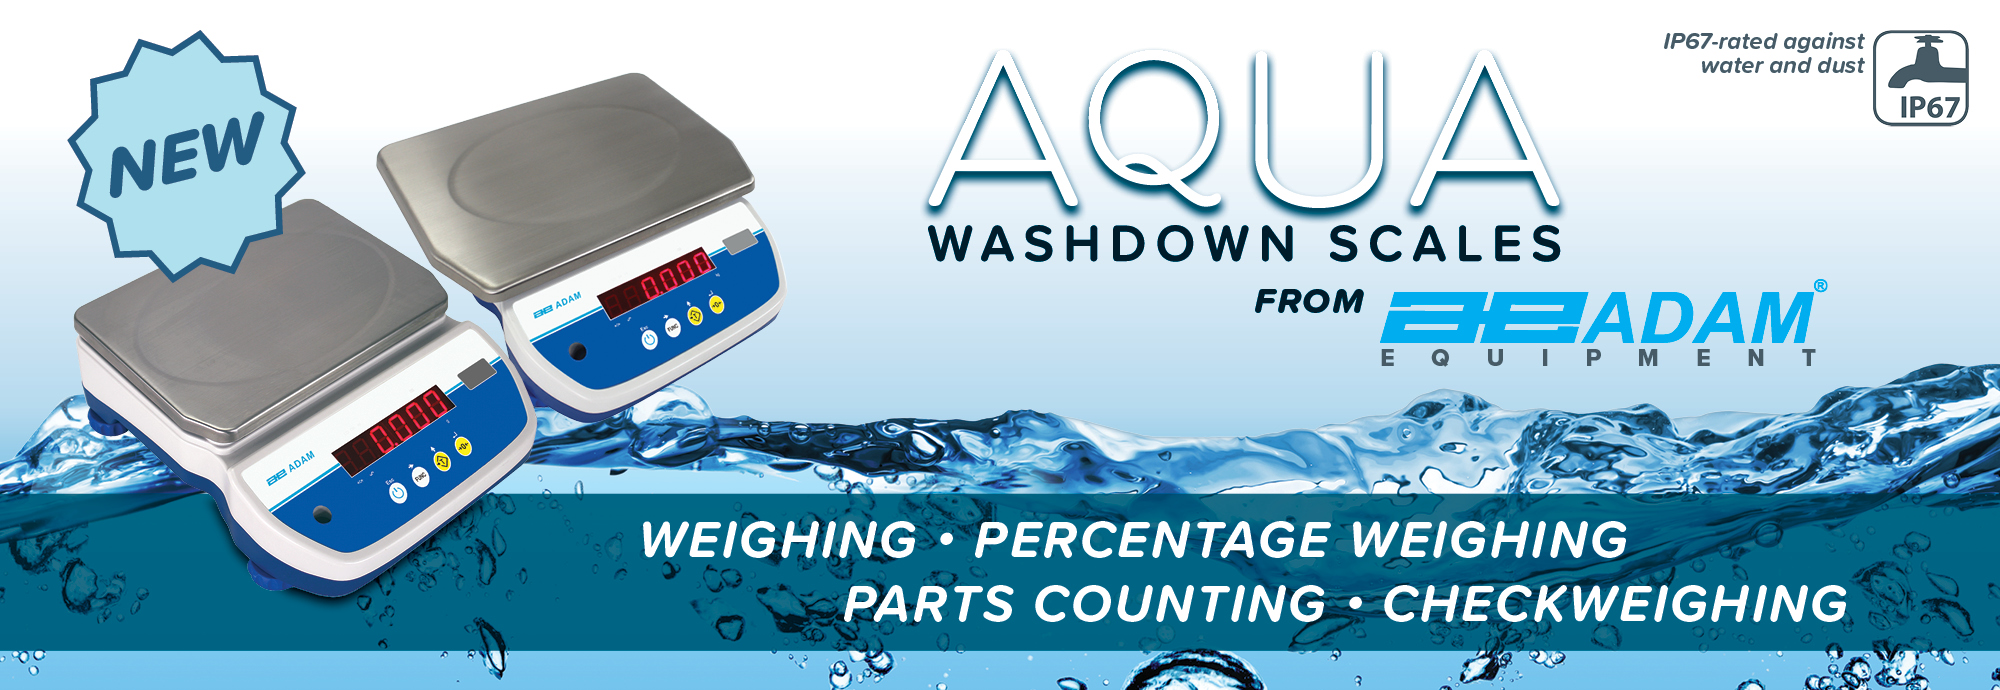 Wash Down Bench Scale Aqua from Adam Equipment